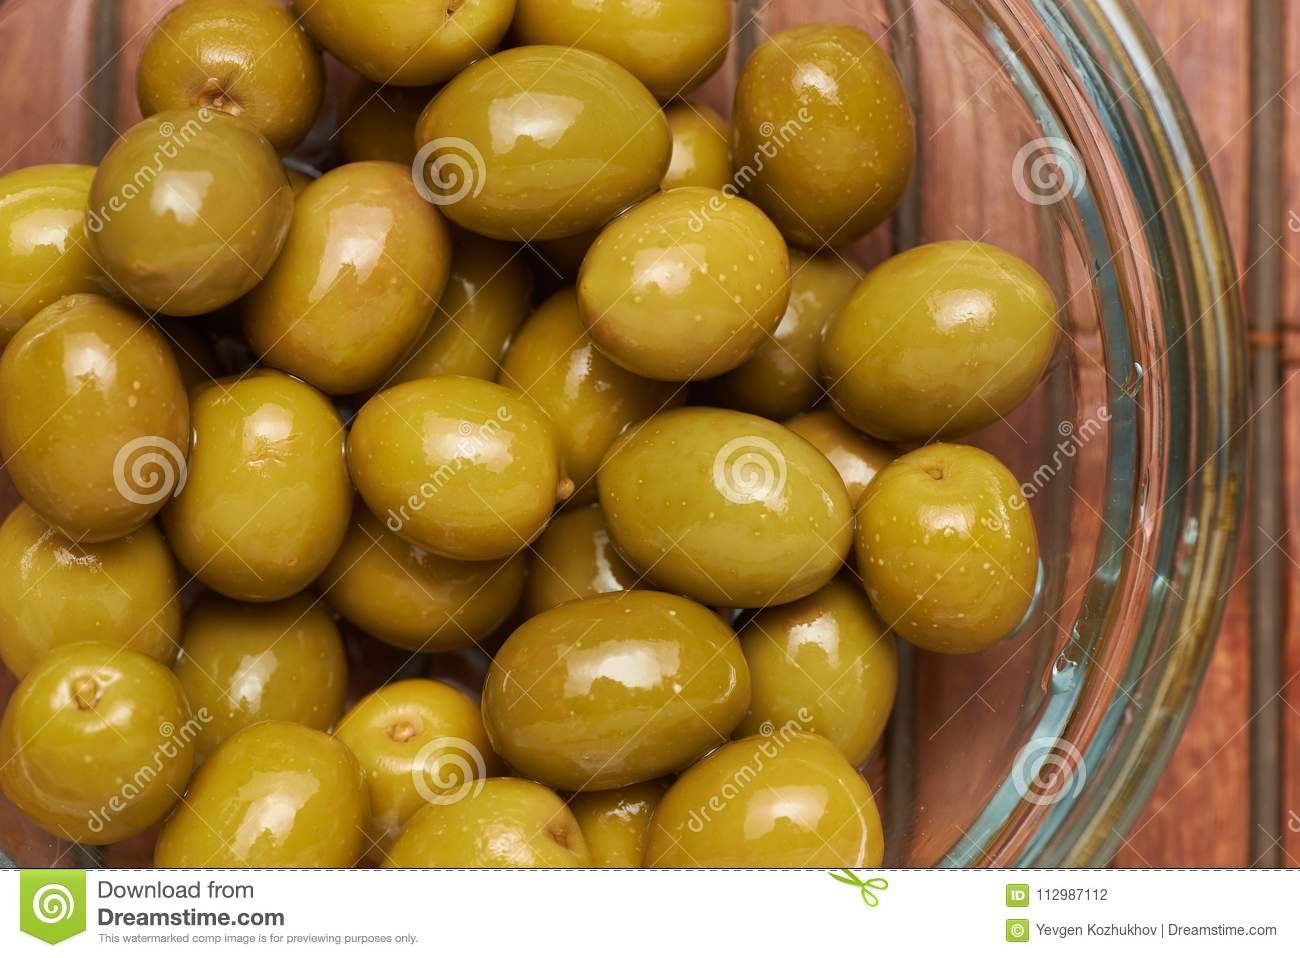 Olives in a glass plate on a brown background